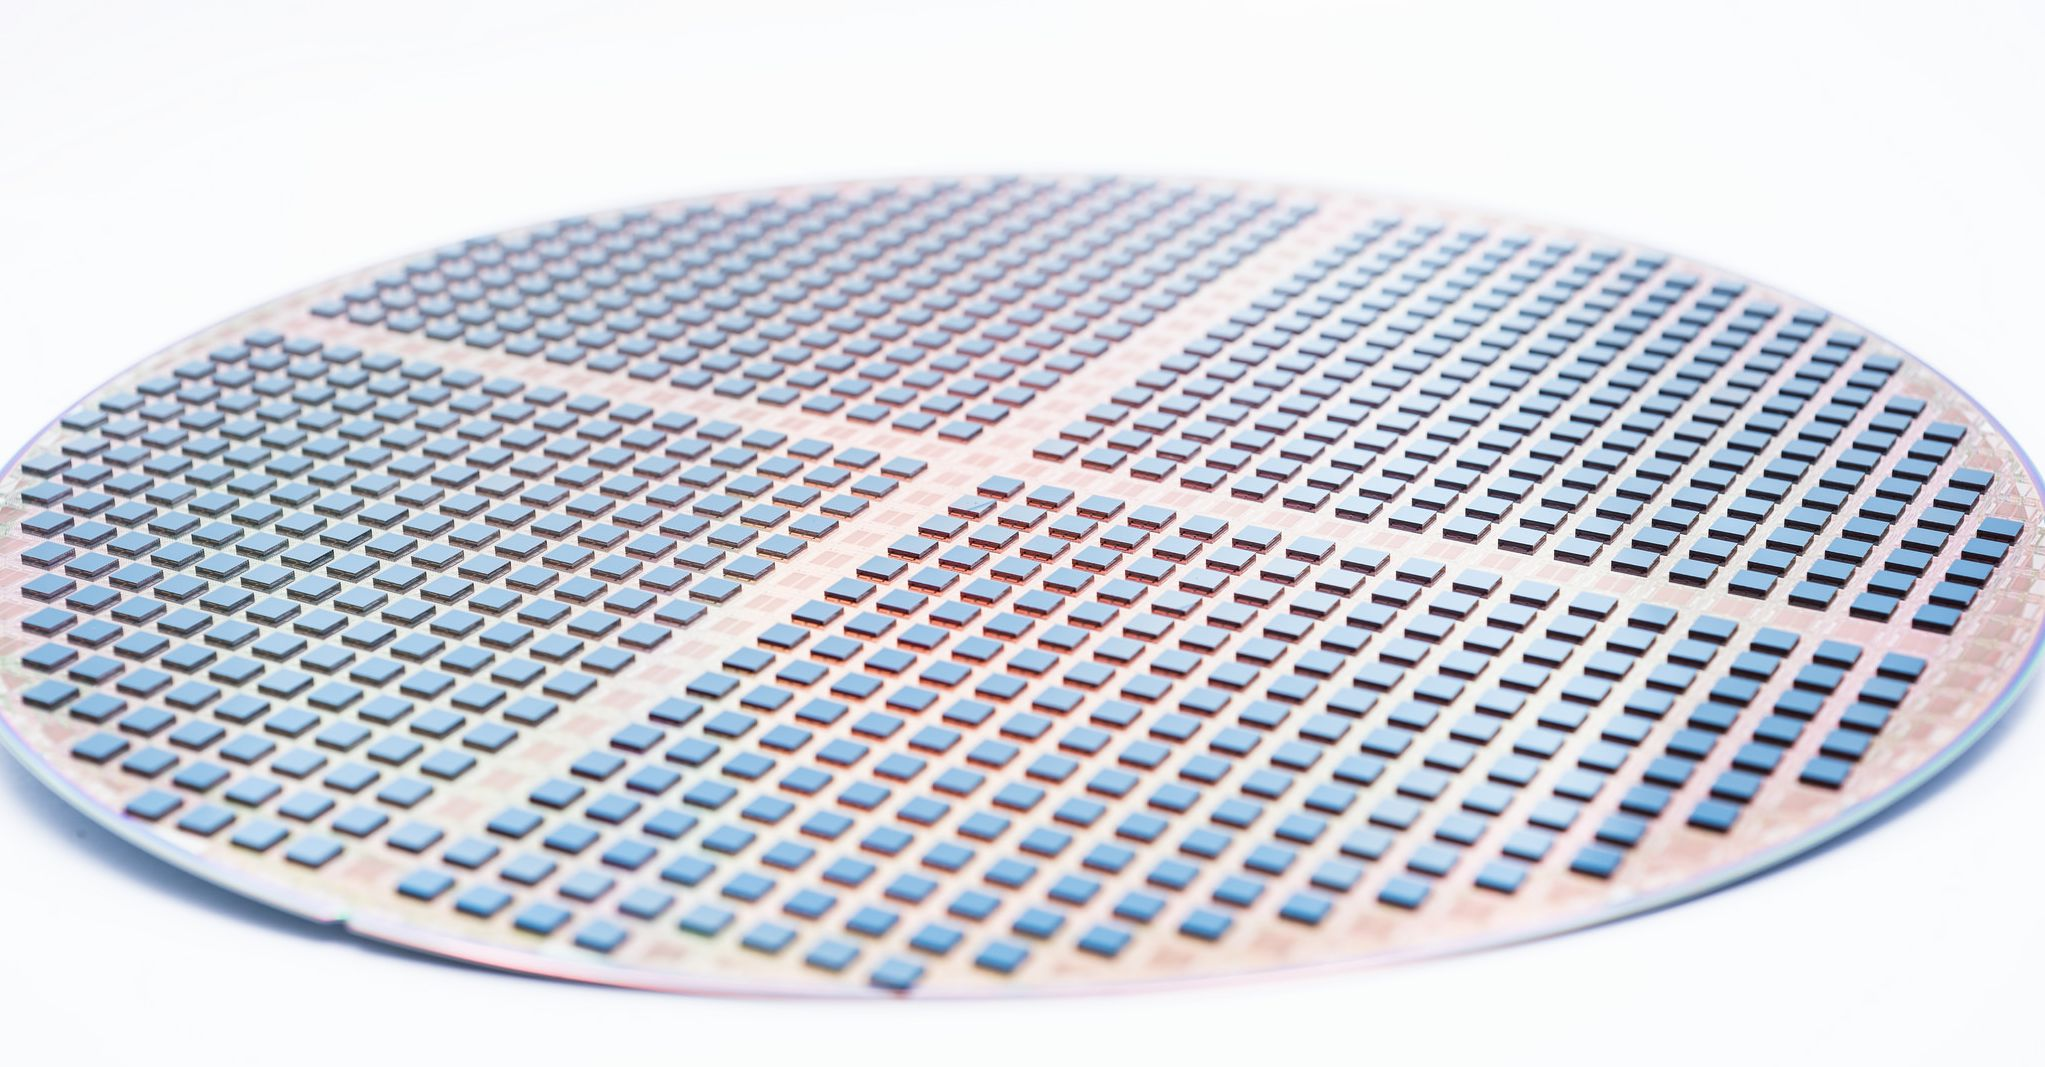 3D stacked IC: processed wafer with chips stacked on top using a die-to-wafer process.